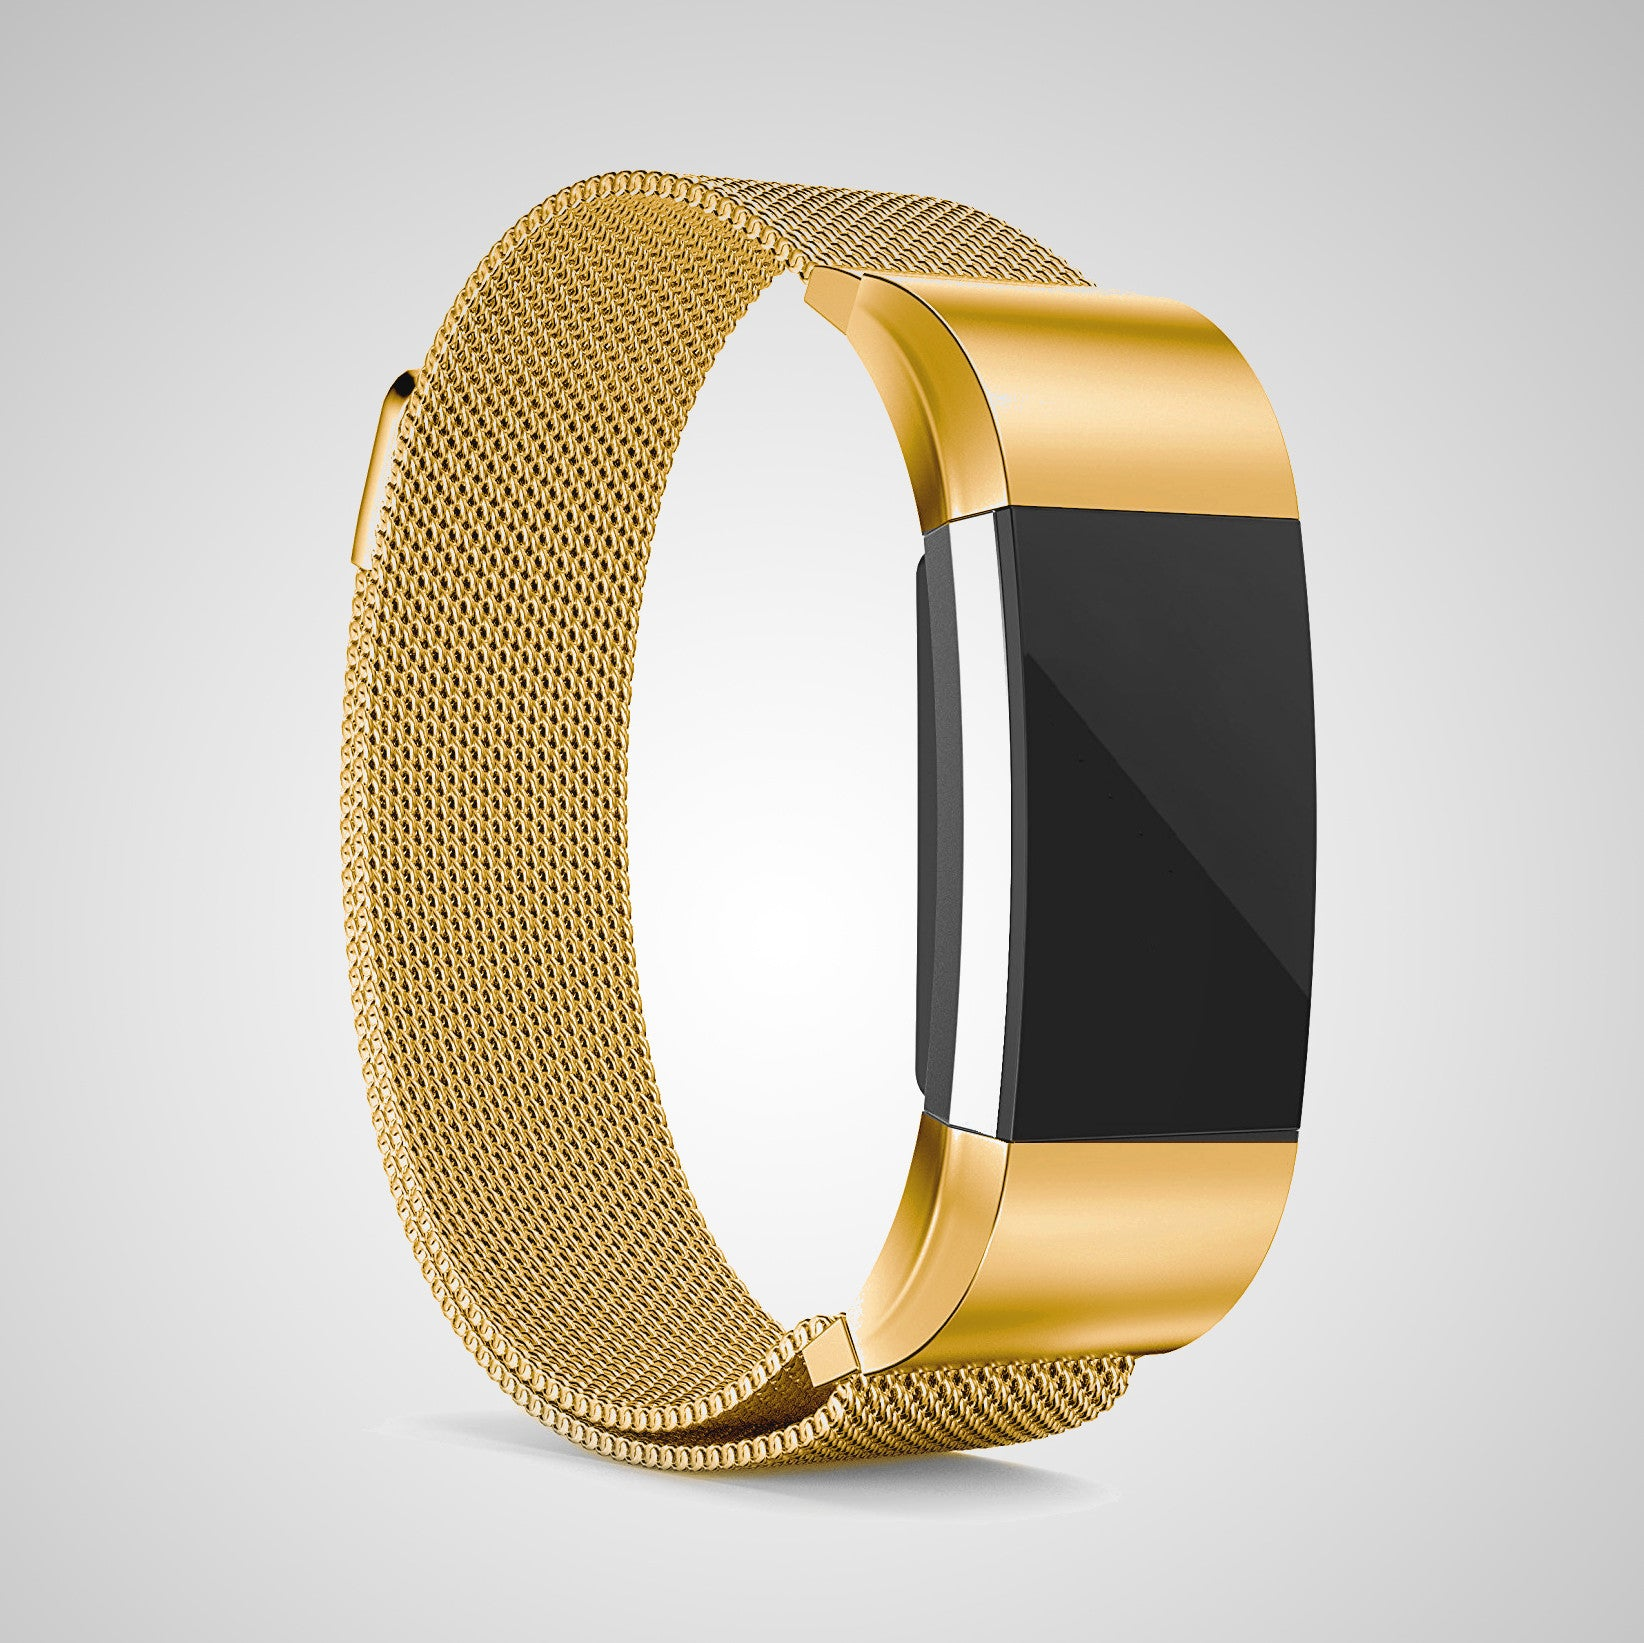 morstep gold edition band for fitbit charge 2 morstep. Black Bedroom Furniture Sets. Home Design Ideas